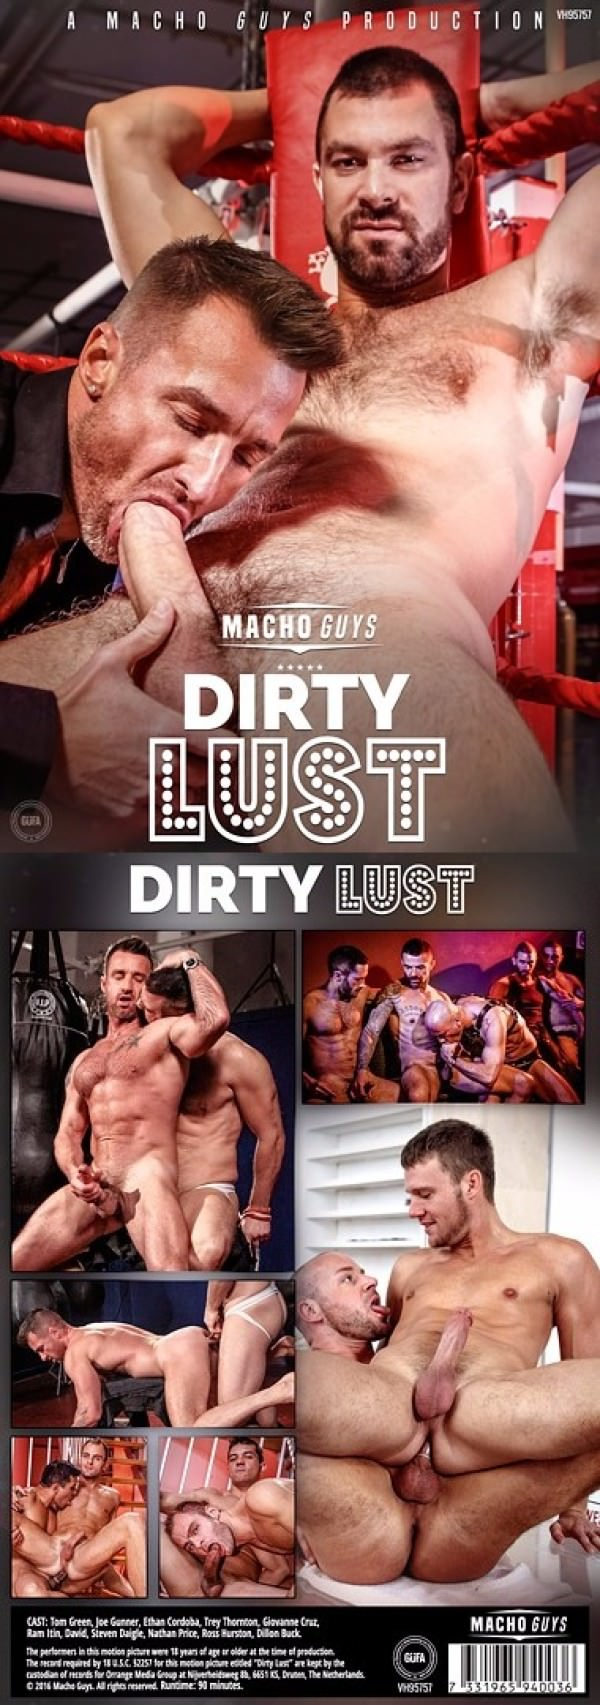 MachoGuys Dirty Lust DVD